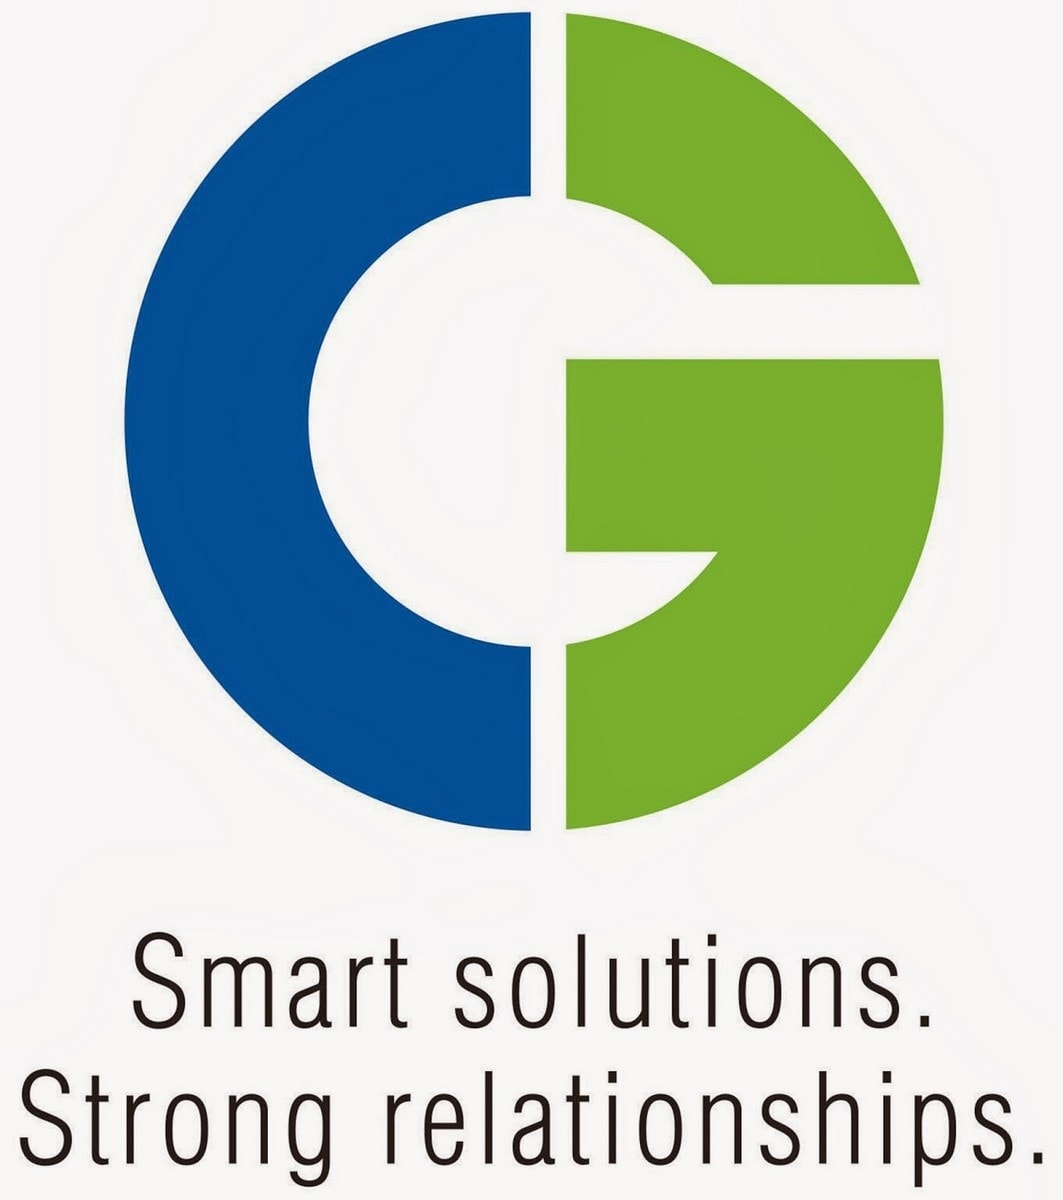 SWOT Analysis of Crompton Greaves - 3